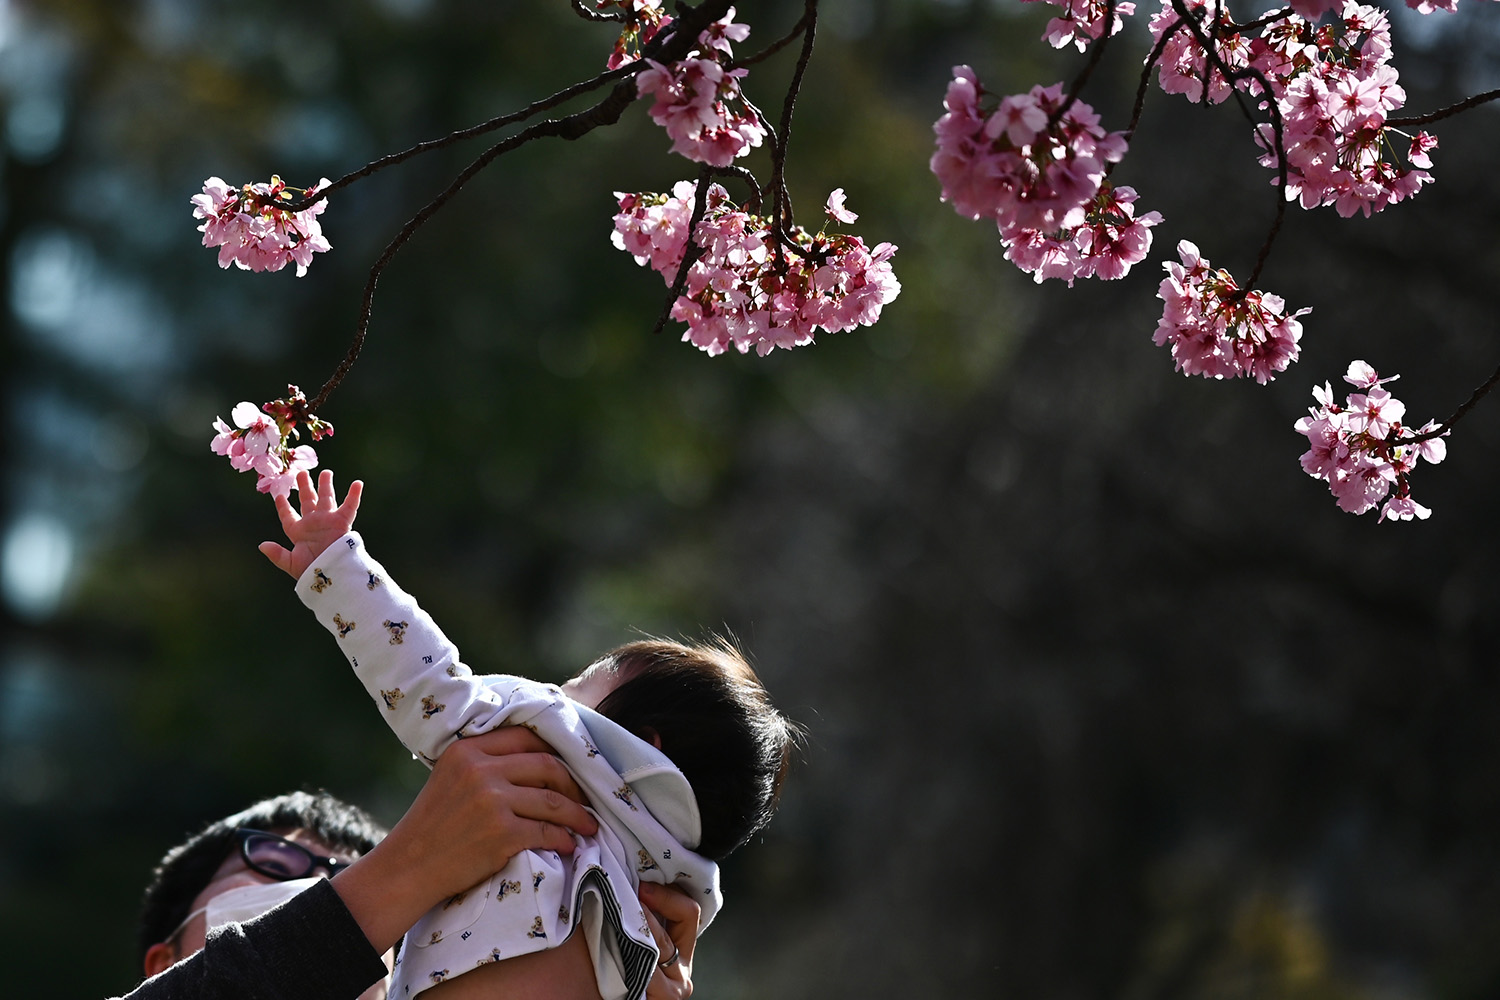 A child reaches up to touch the cherry blossoms at Ueno Park in Tokyo on March 21. CHARLY TRIBALLEAU/AFP via Getty Images